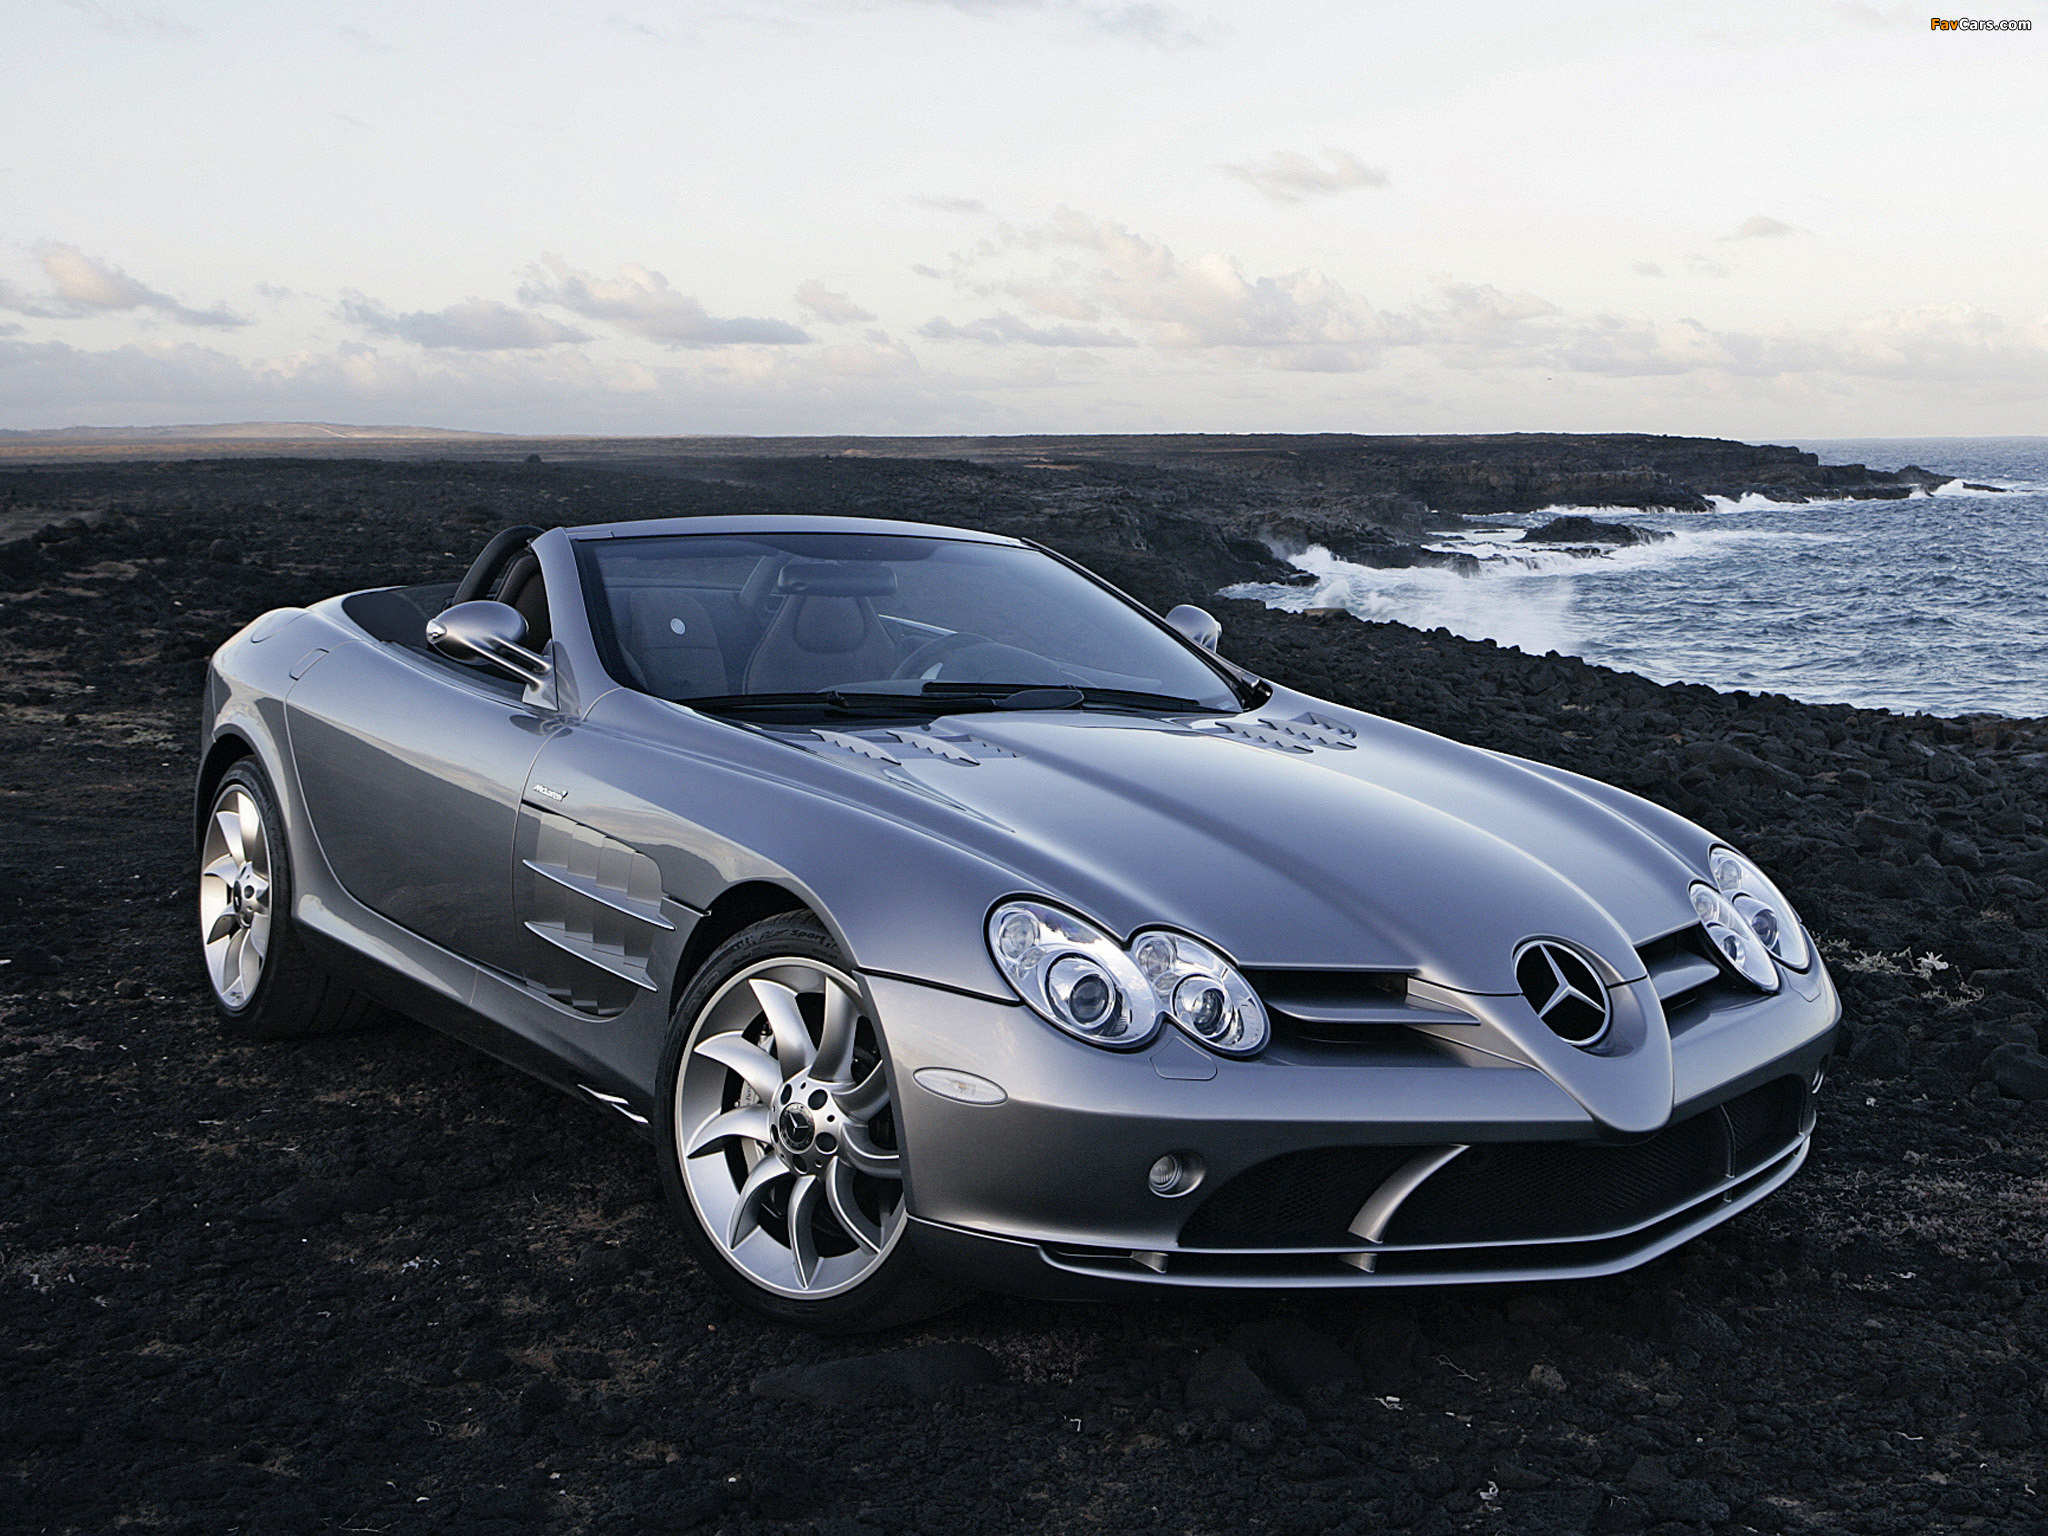 Pictures Of Mercedes Benz Slr Mclaren Roadster R199 2007